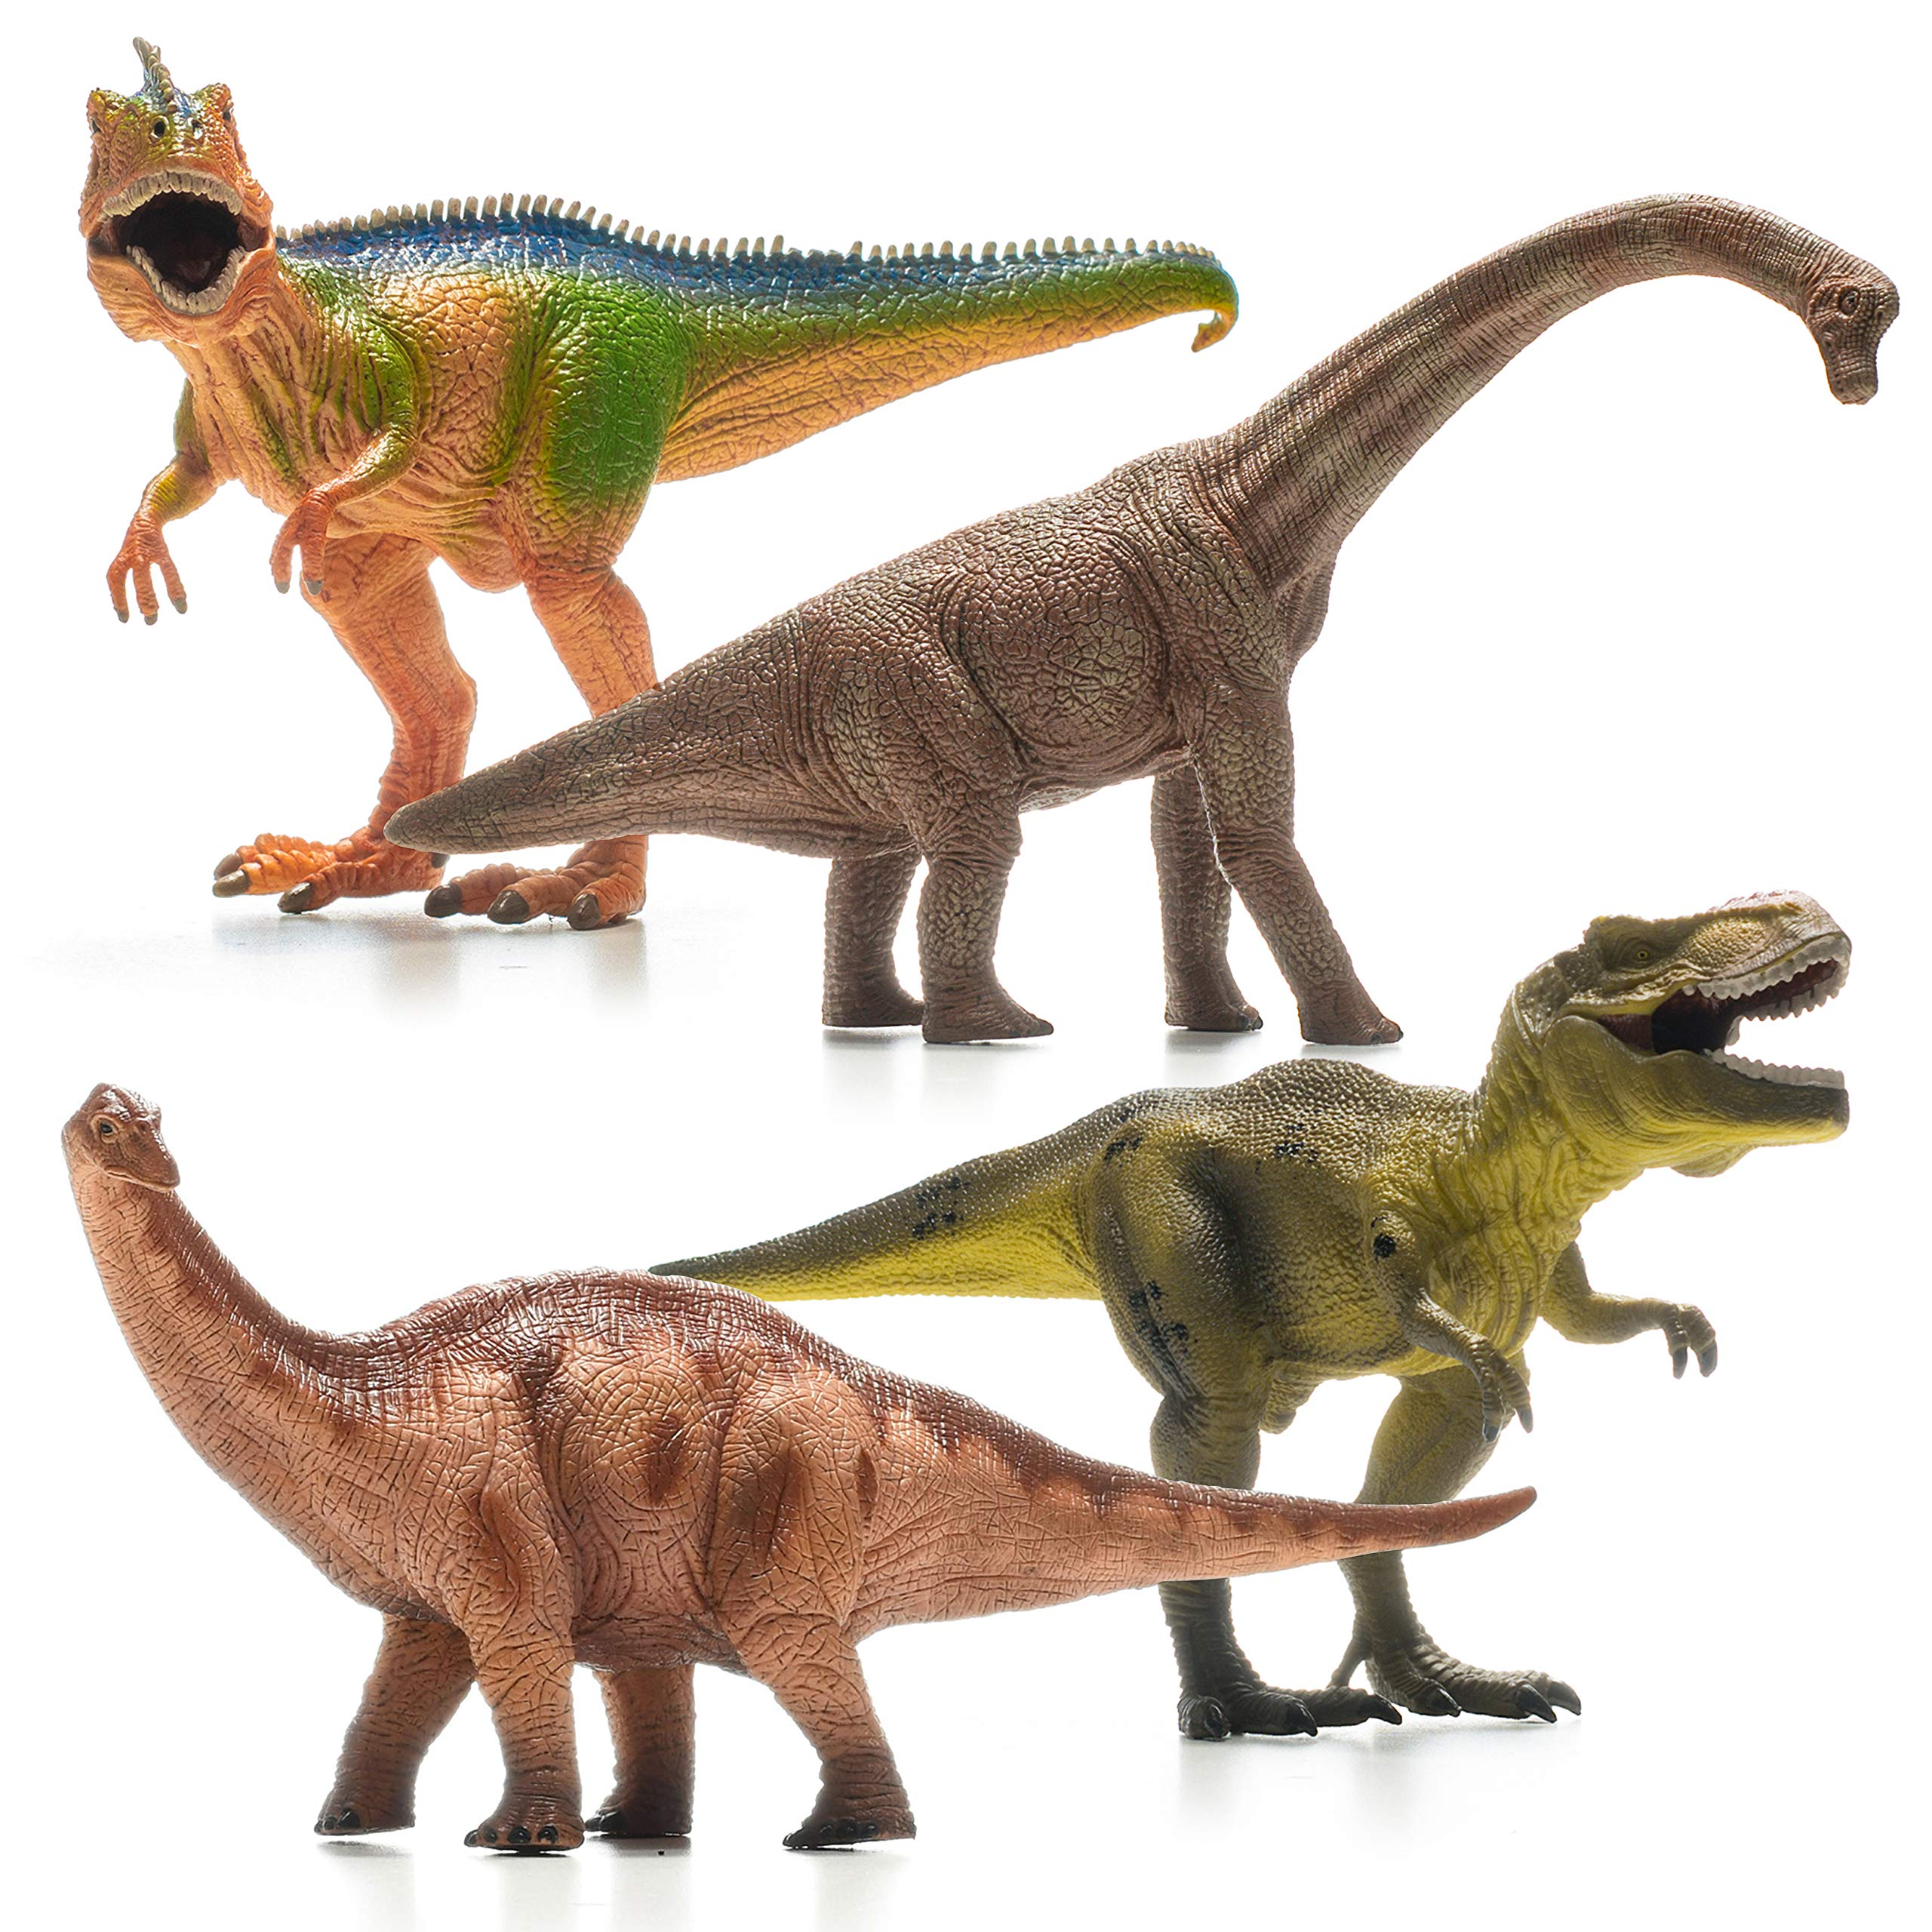 Prextex 13'' Realistic Looking Dinosaurs Pack of 4 Jumbo Plastic Assorted Dinosaur Figures by Prextex